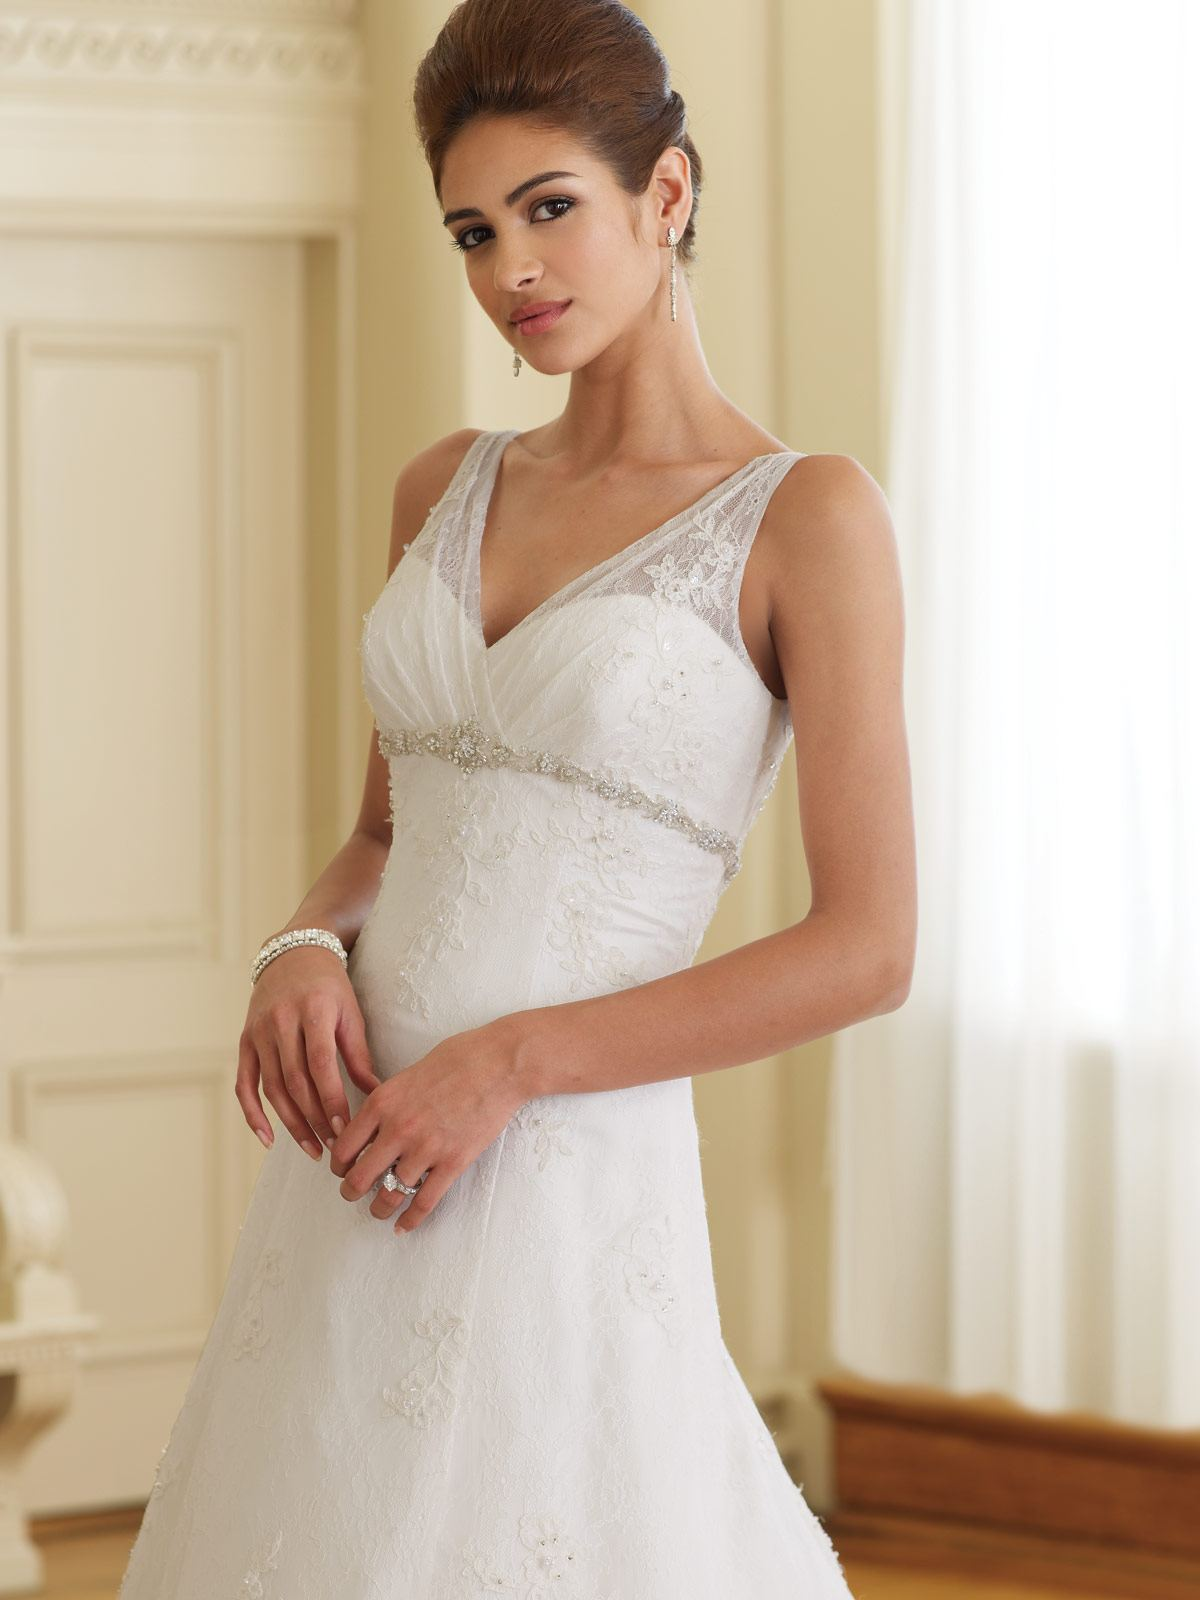 cc9936370cd Ball gowns are quite the best idea for short women. Oftentimes these dresses  are just too voluminous